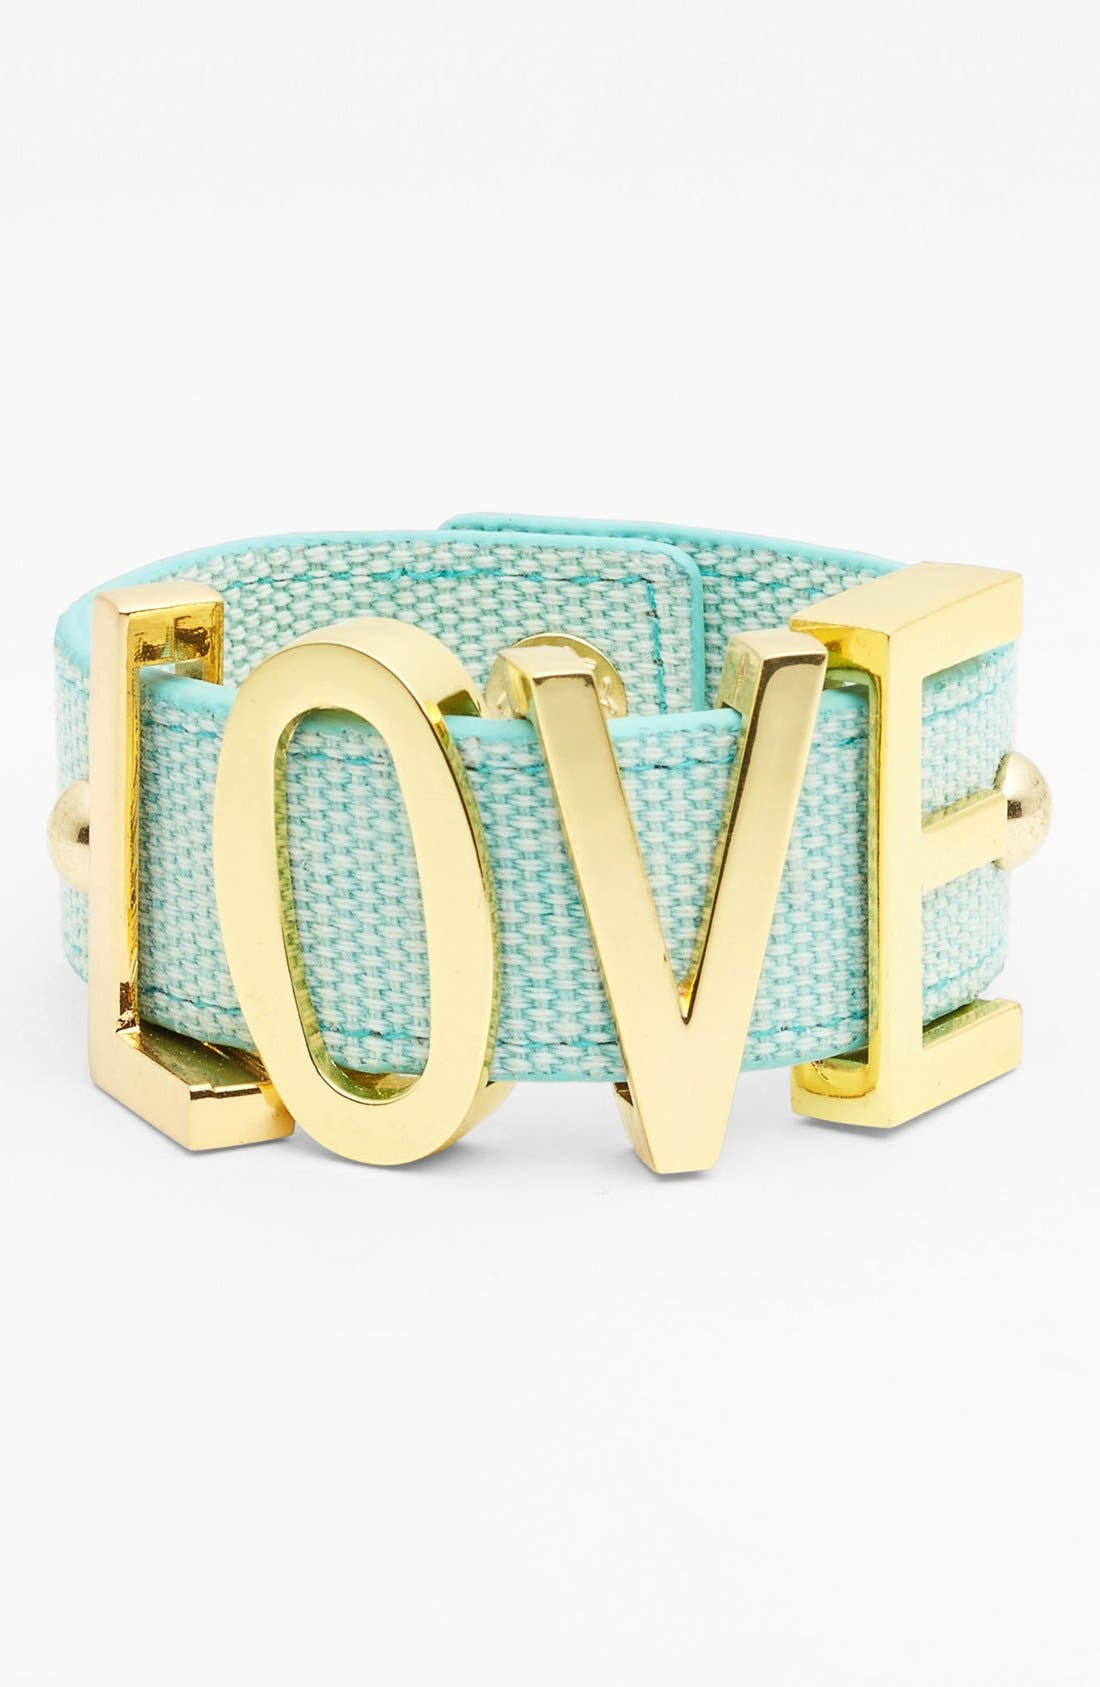 Alternate Image 1 Selected - BCBGeneration 'Affirmation - Large' Canvas Bracelet